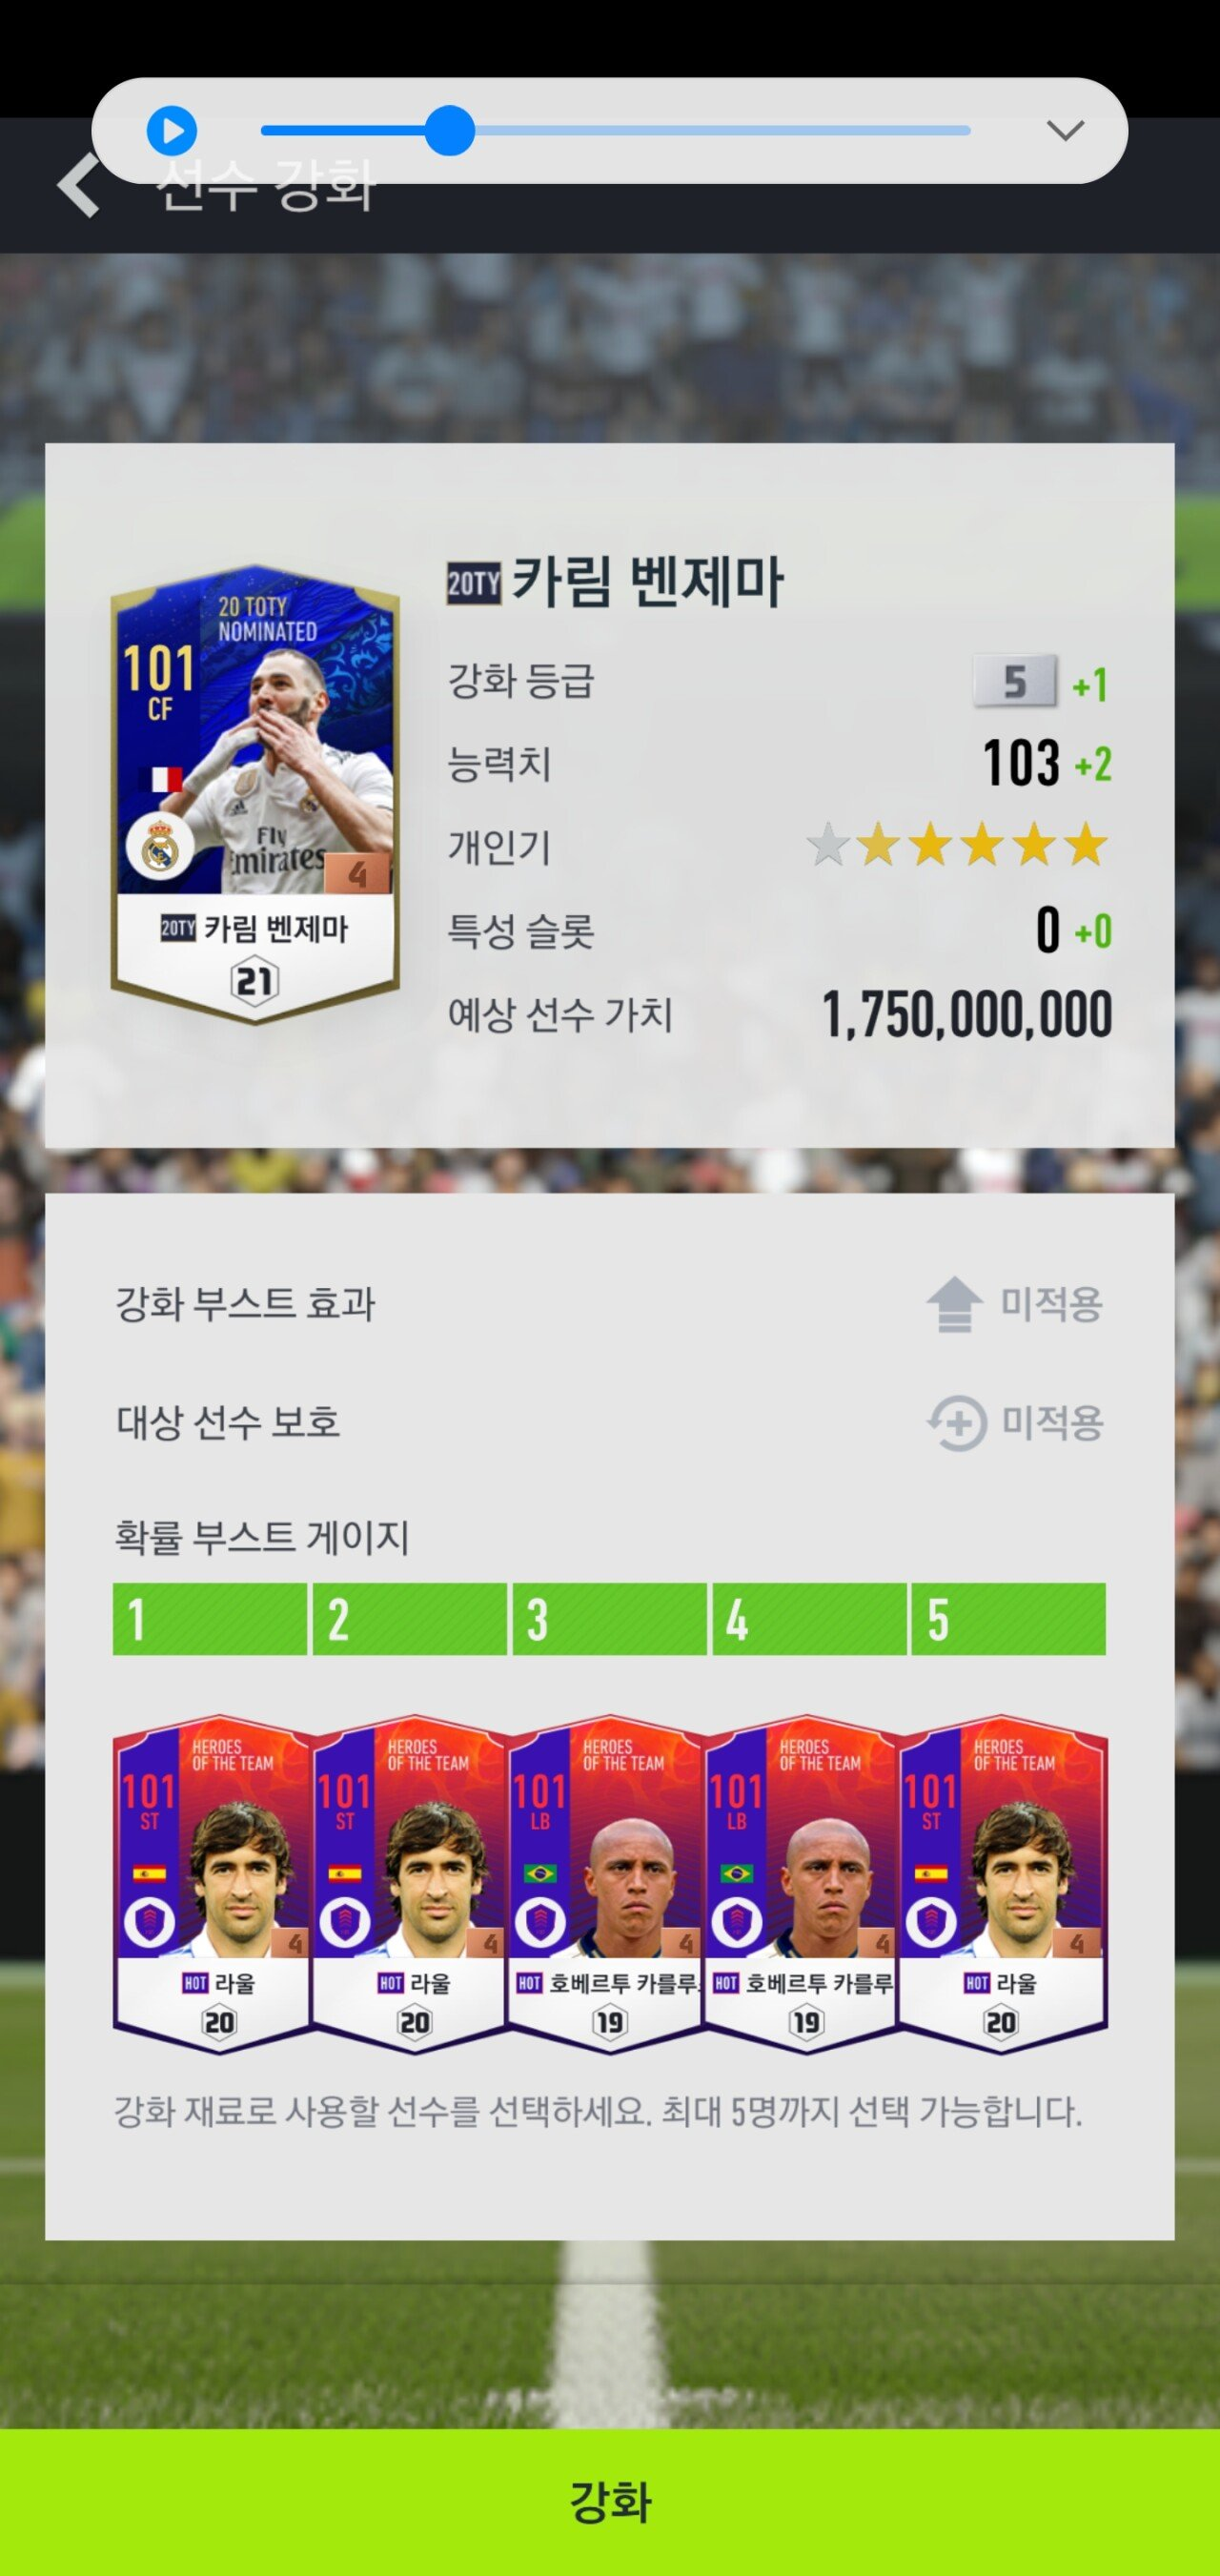 Screenshot_20201122-115903_FIFA Online 4 M.jpg 터지면 피파 접는다